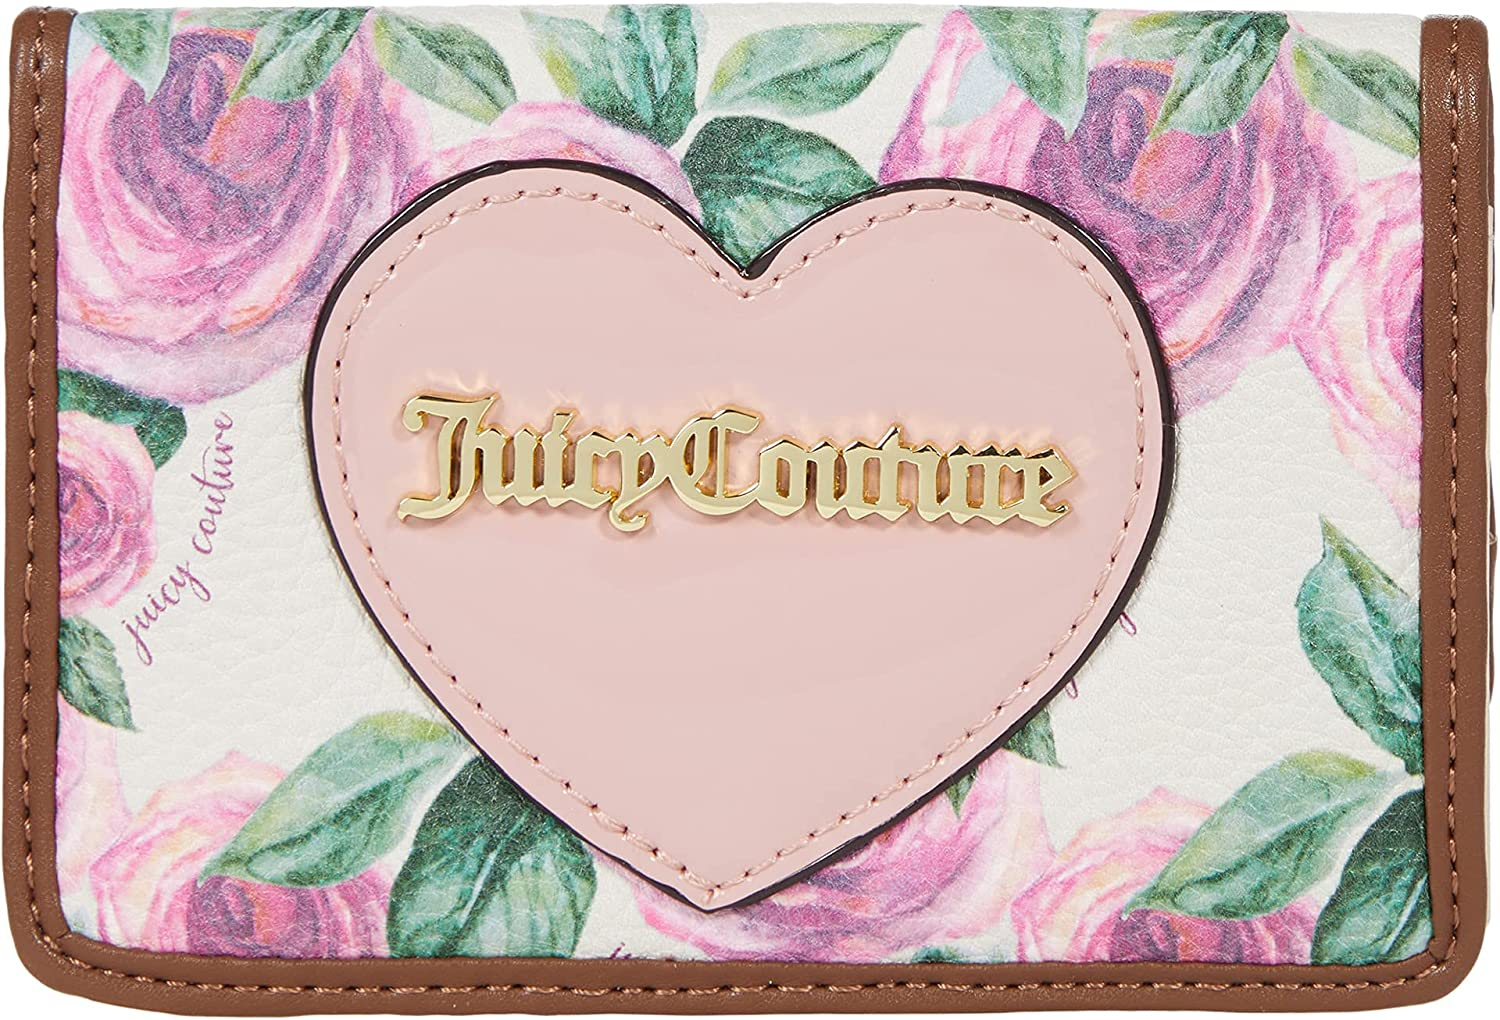 Juicy Couture Whole Lot of Love Flap Card Case White Rose One Size